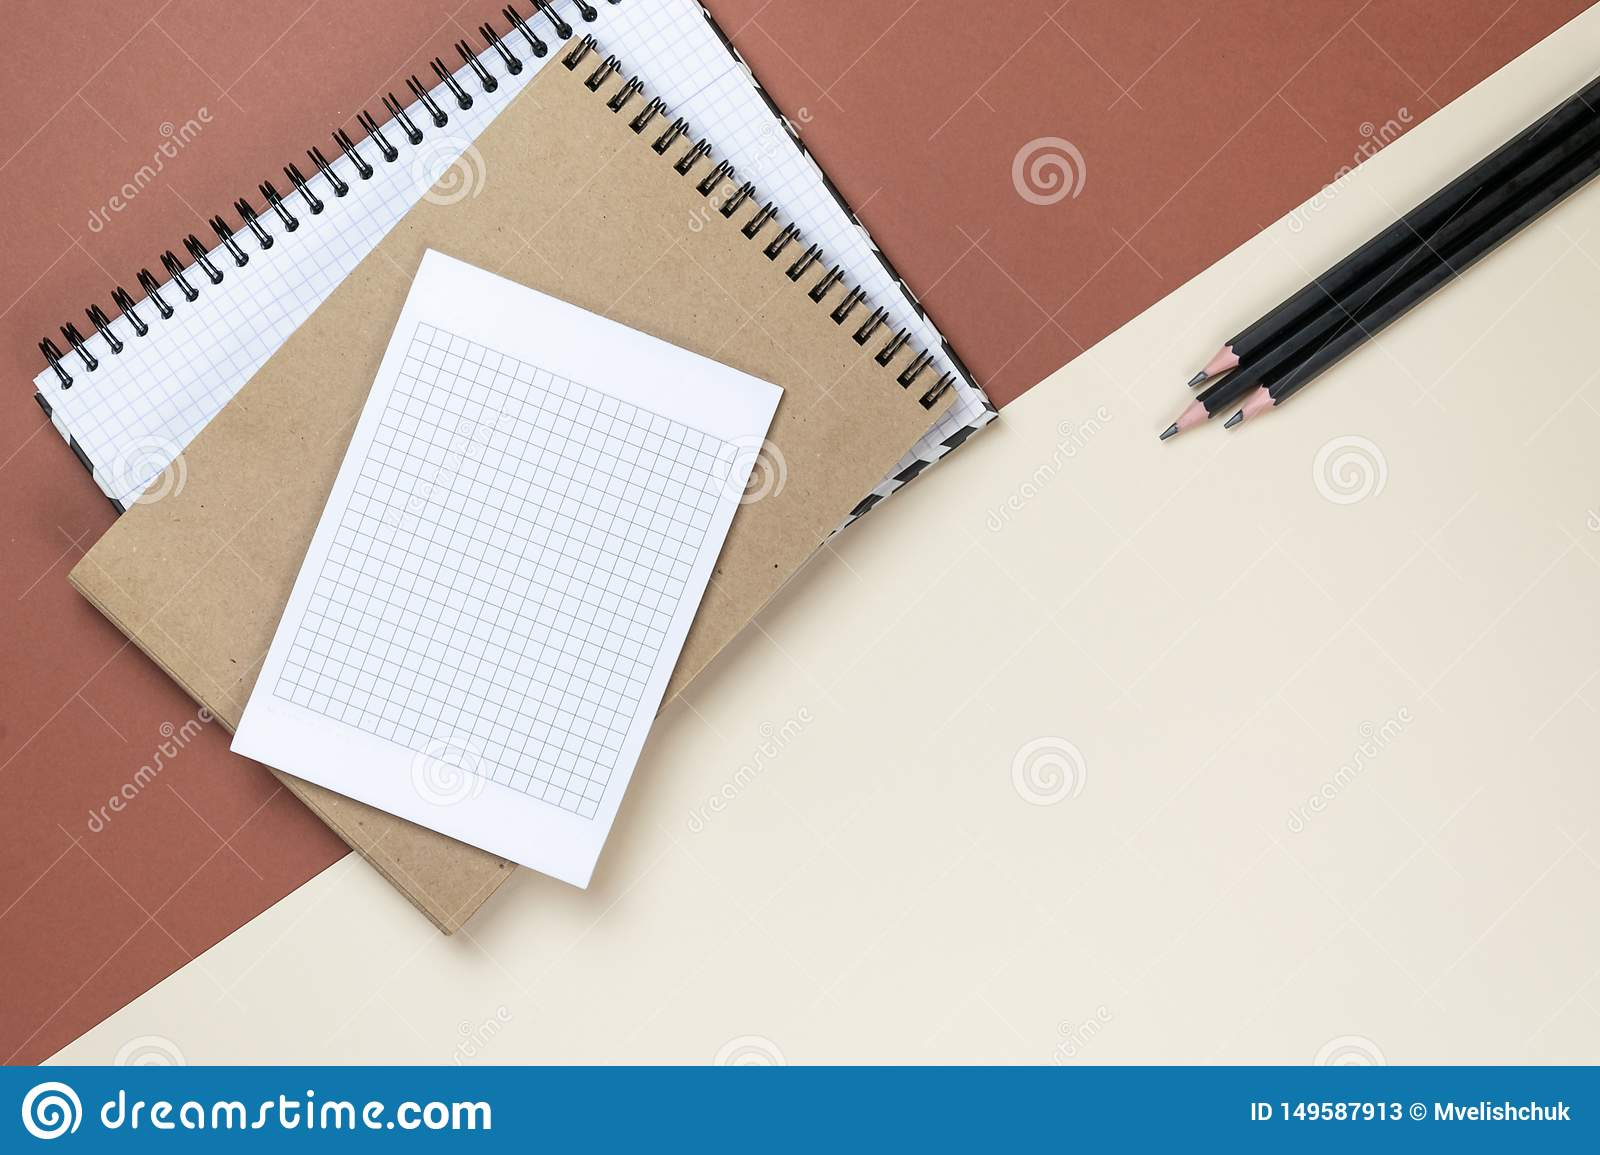 Blank corporate stationery set on brown background. Branding mock up. Flat lay.